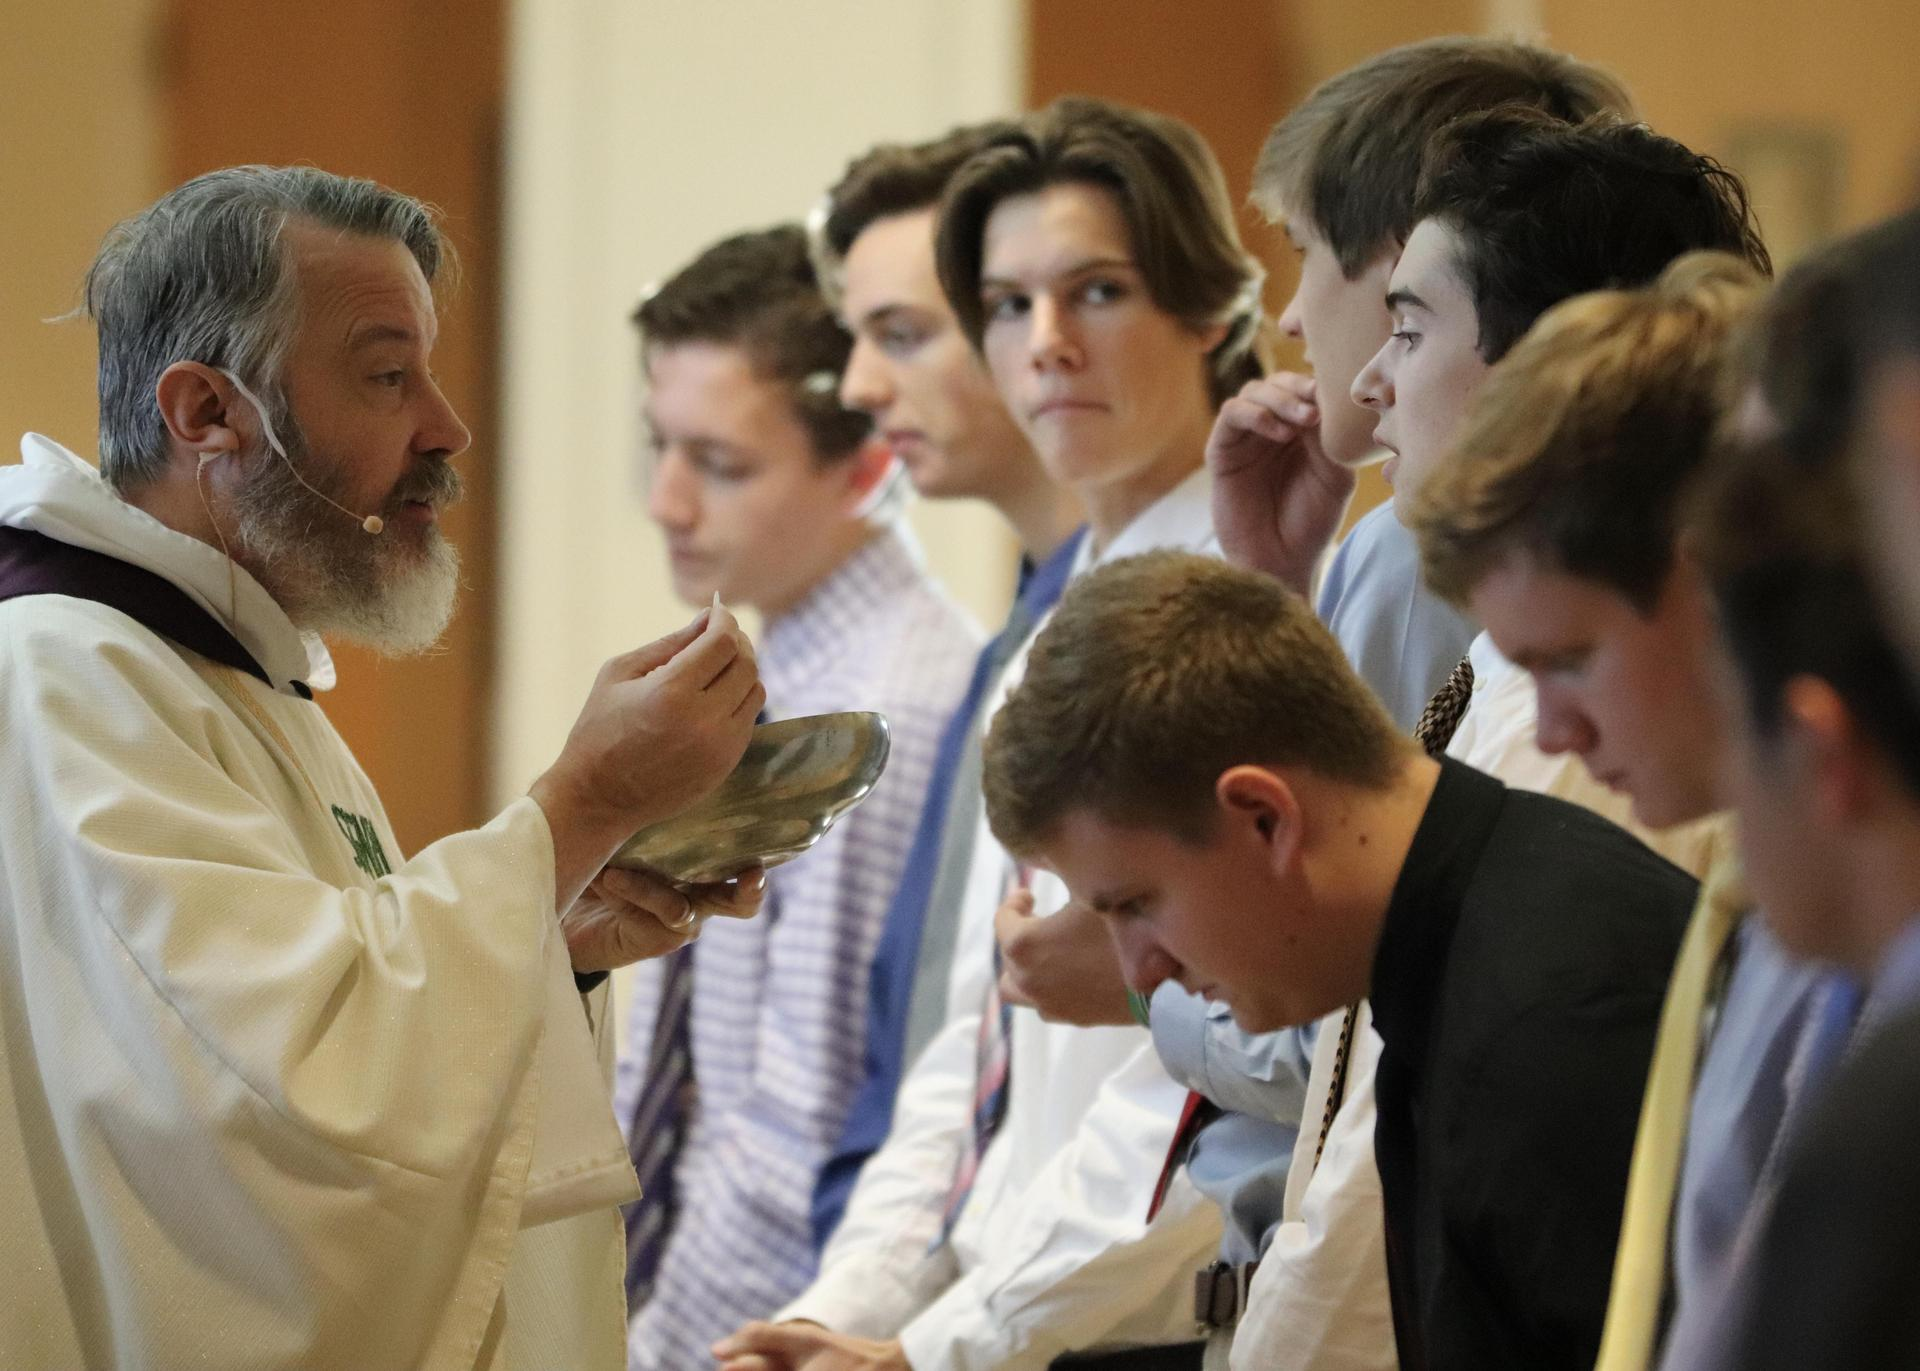 Father DePorres Durham with students